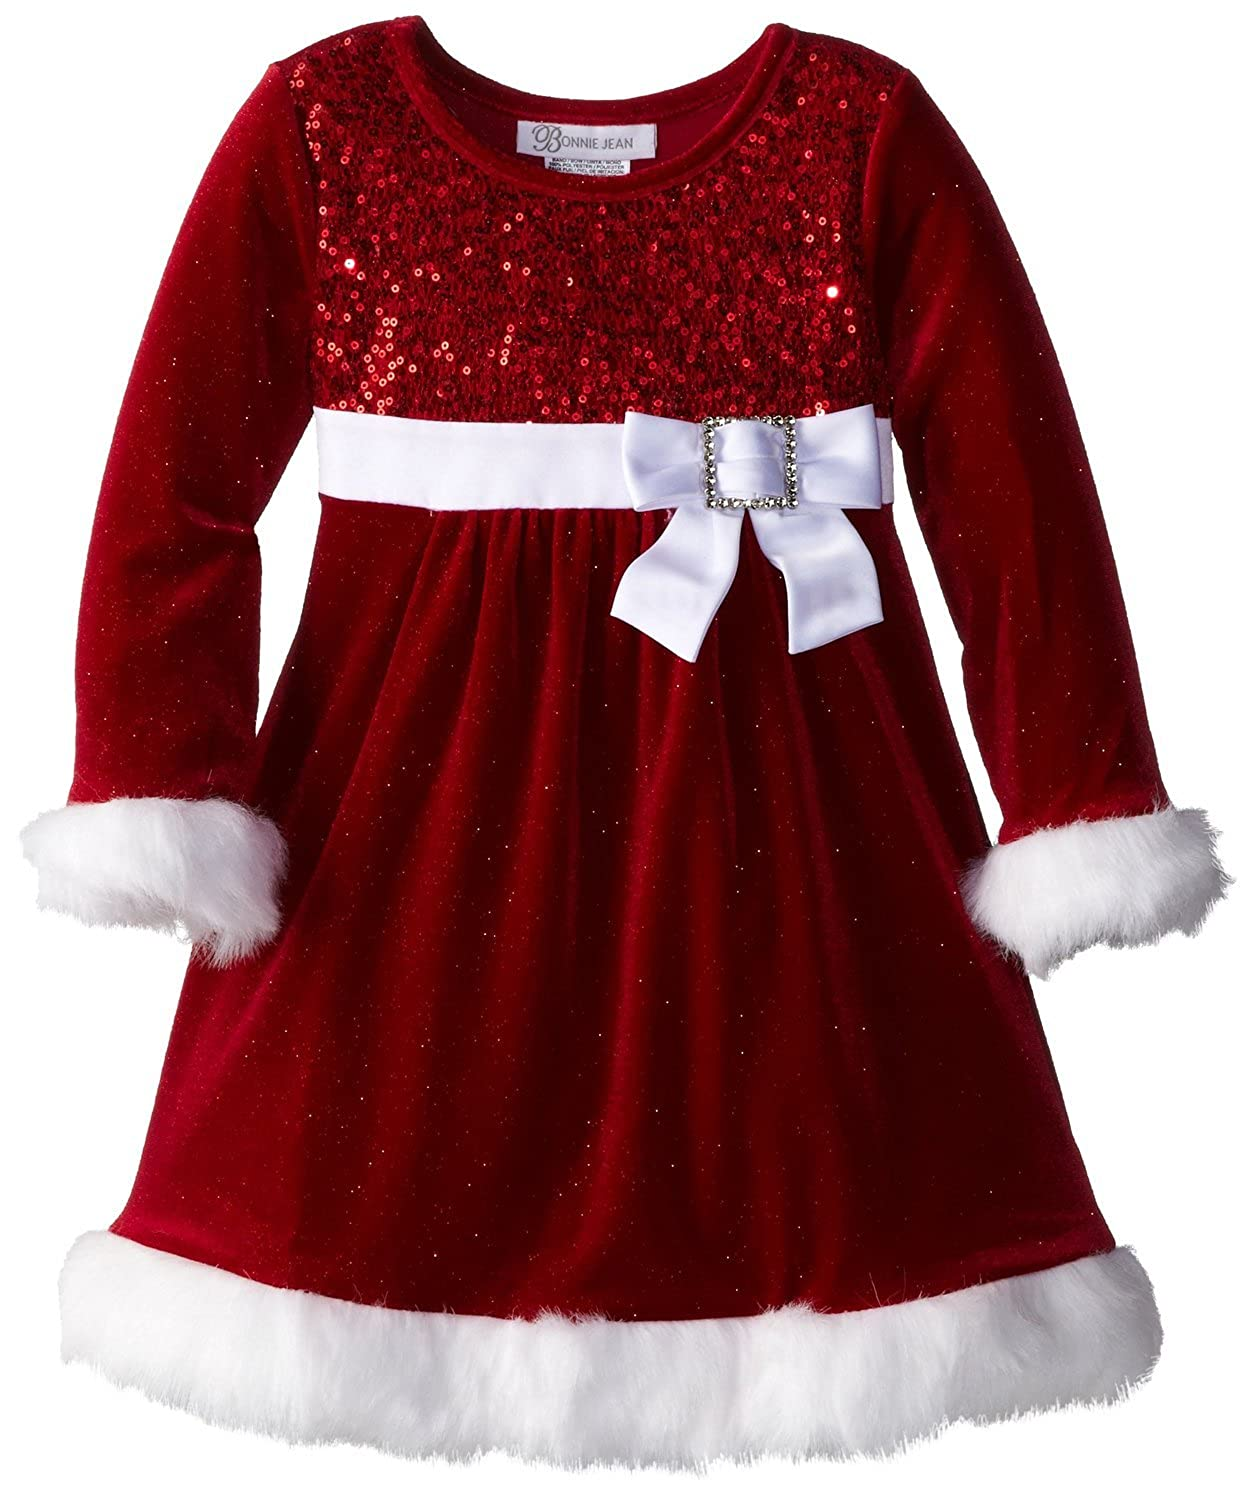 a96b71282c59 Amazon.com: Bonnie Jean Girls Glitter Red Velvet Sequin Christmas Holiday  Dress, 18M: Clothing